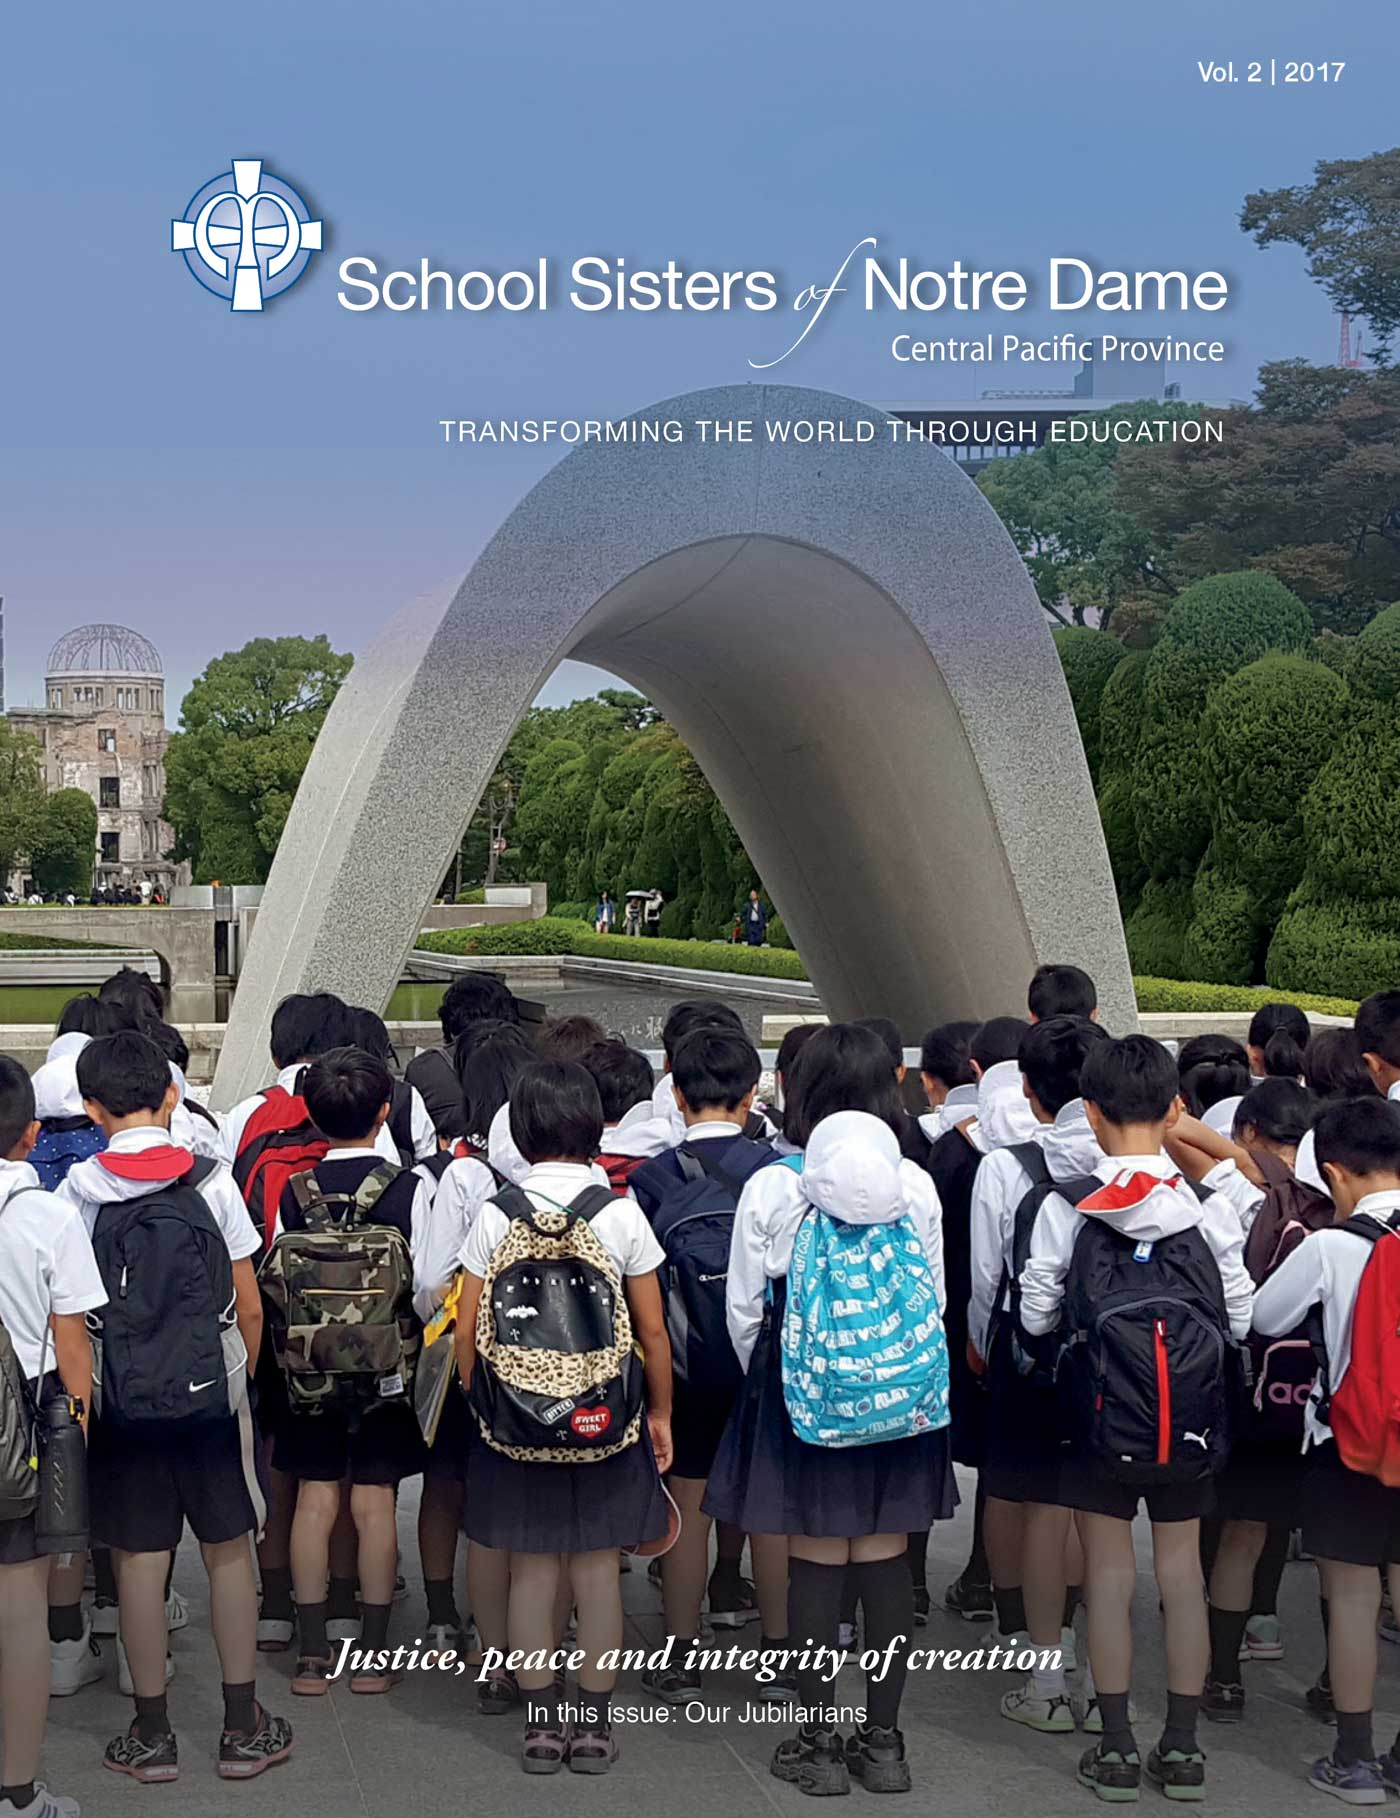 ON THE COVER: Students gather around the Cenotaph at Hiroshima Peace Memorial Park in Naka Ward, Hiroshima.